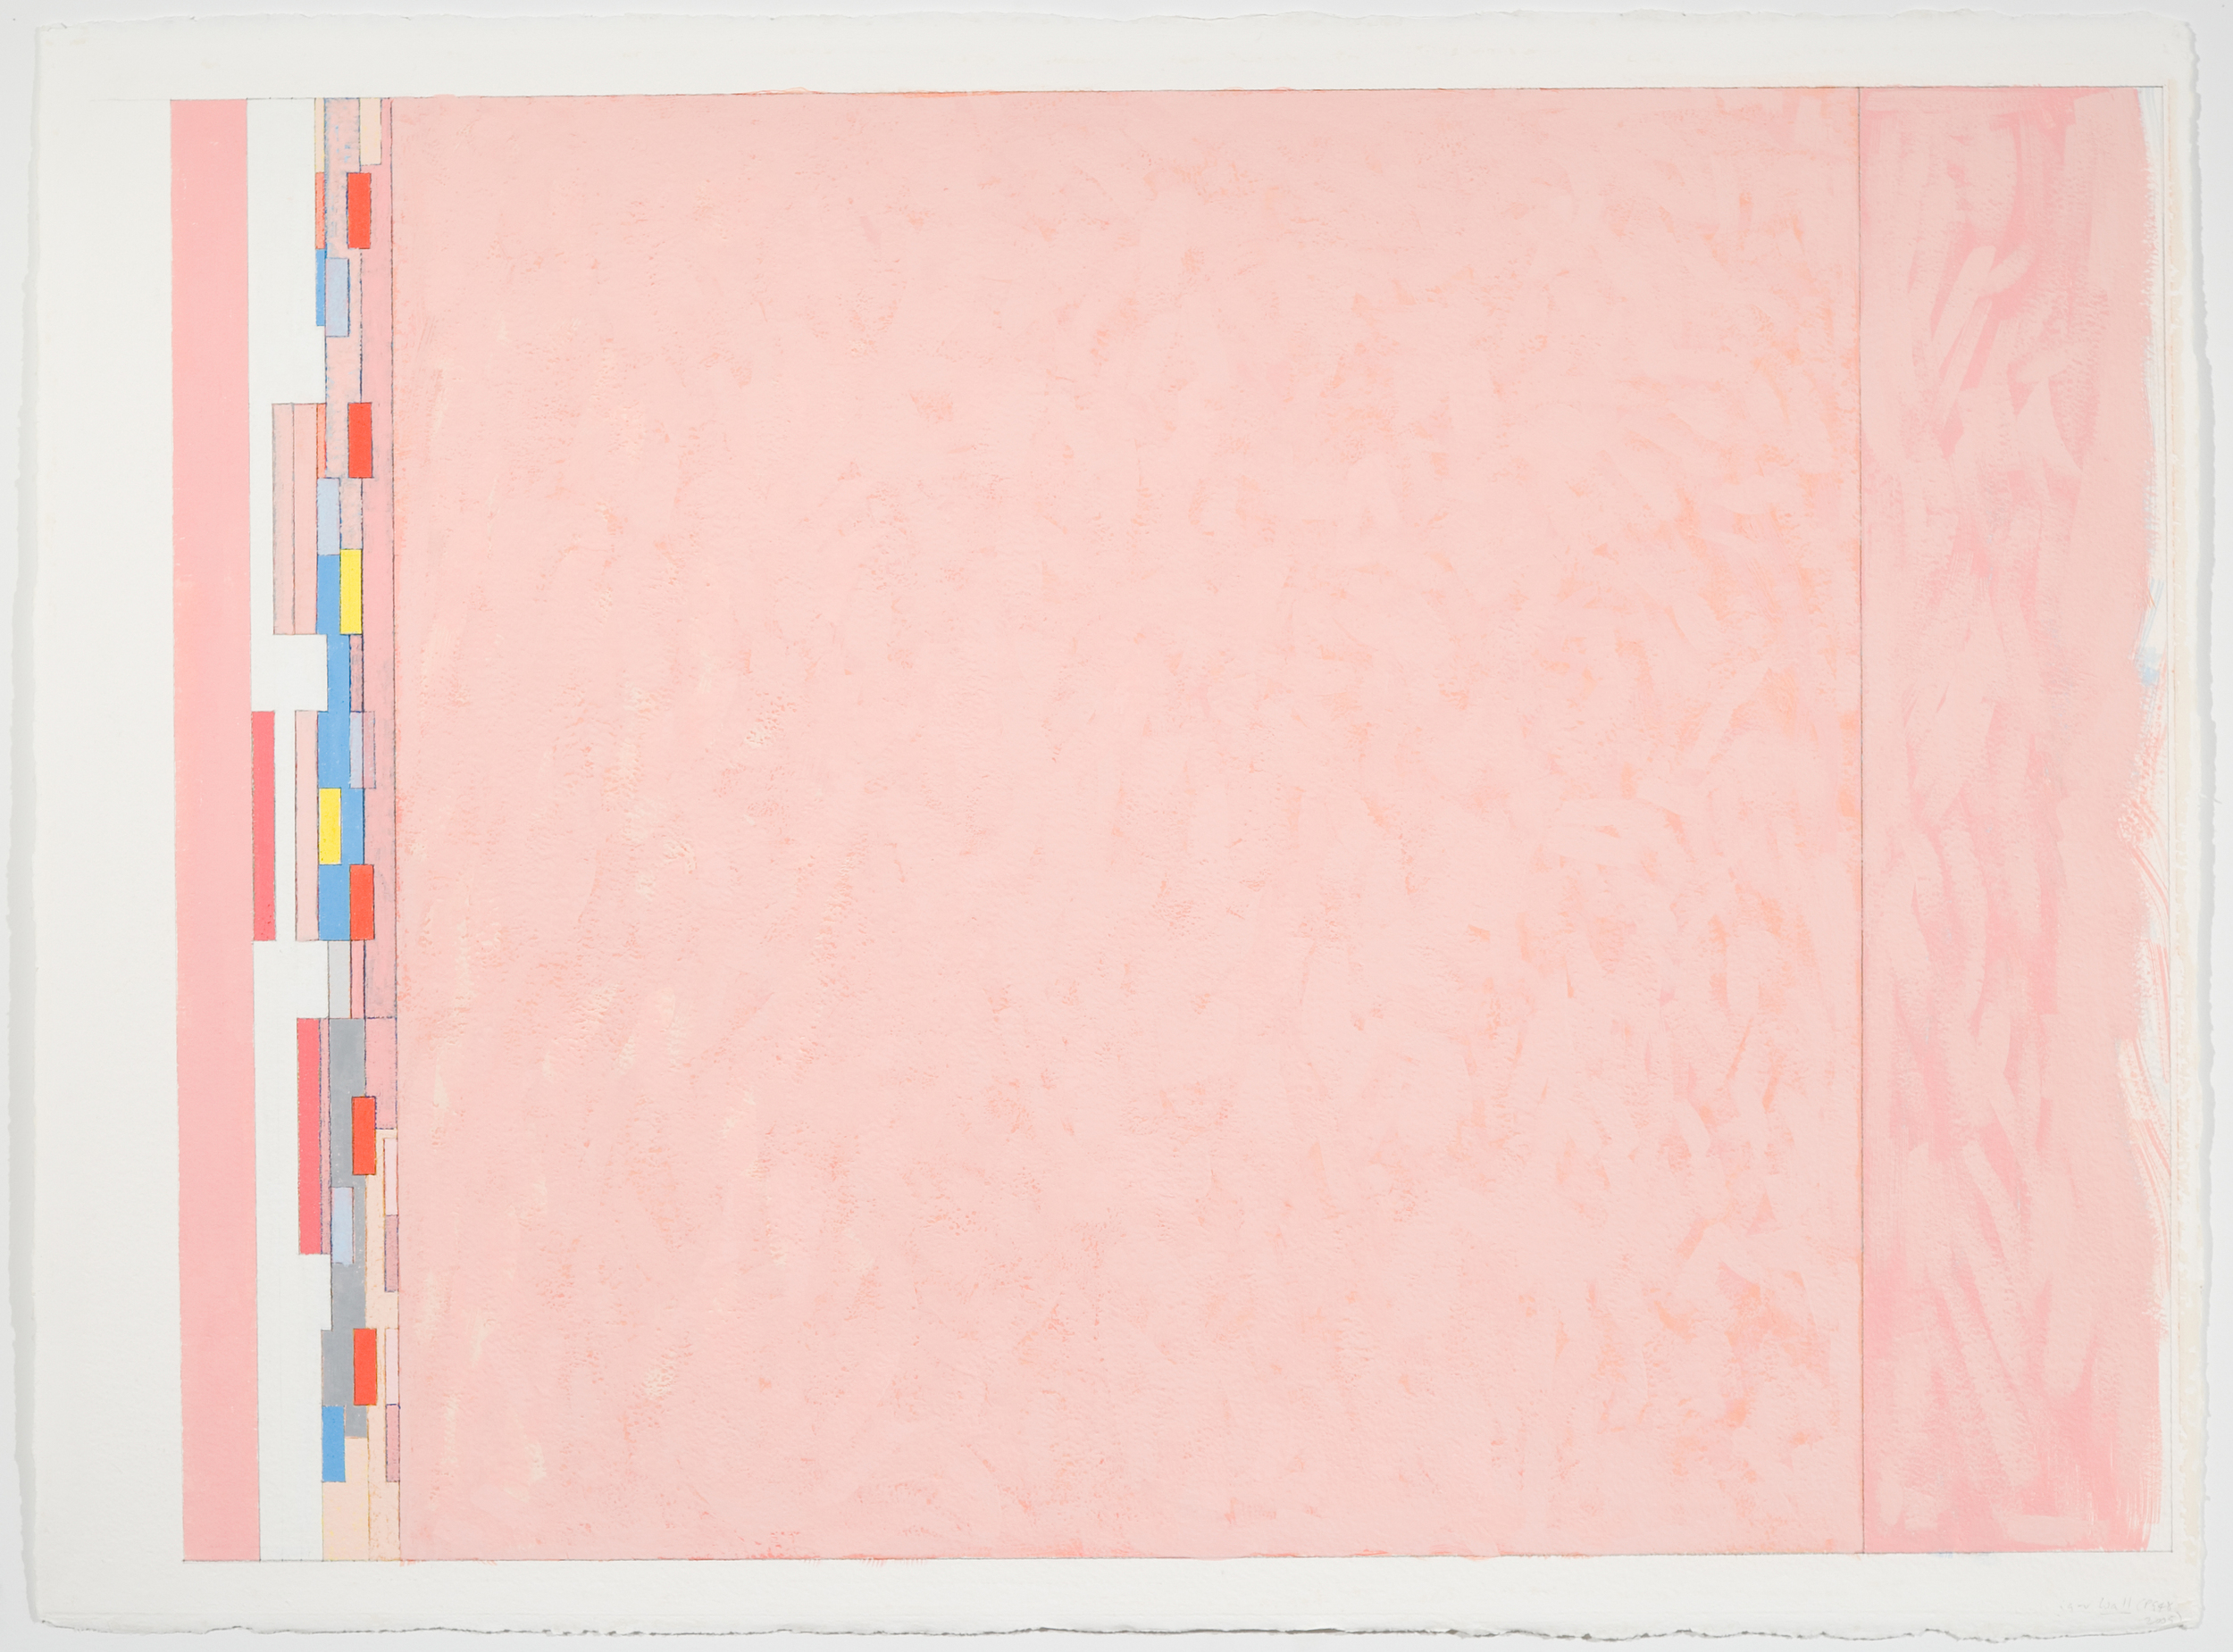 """Wall (PG 48), 2005, 20 2/8"""" x 27 2/8""""(image), 29 6/8""""x 22""""(paper)"""